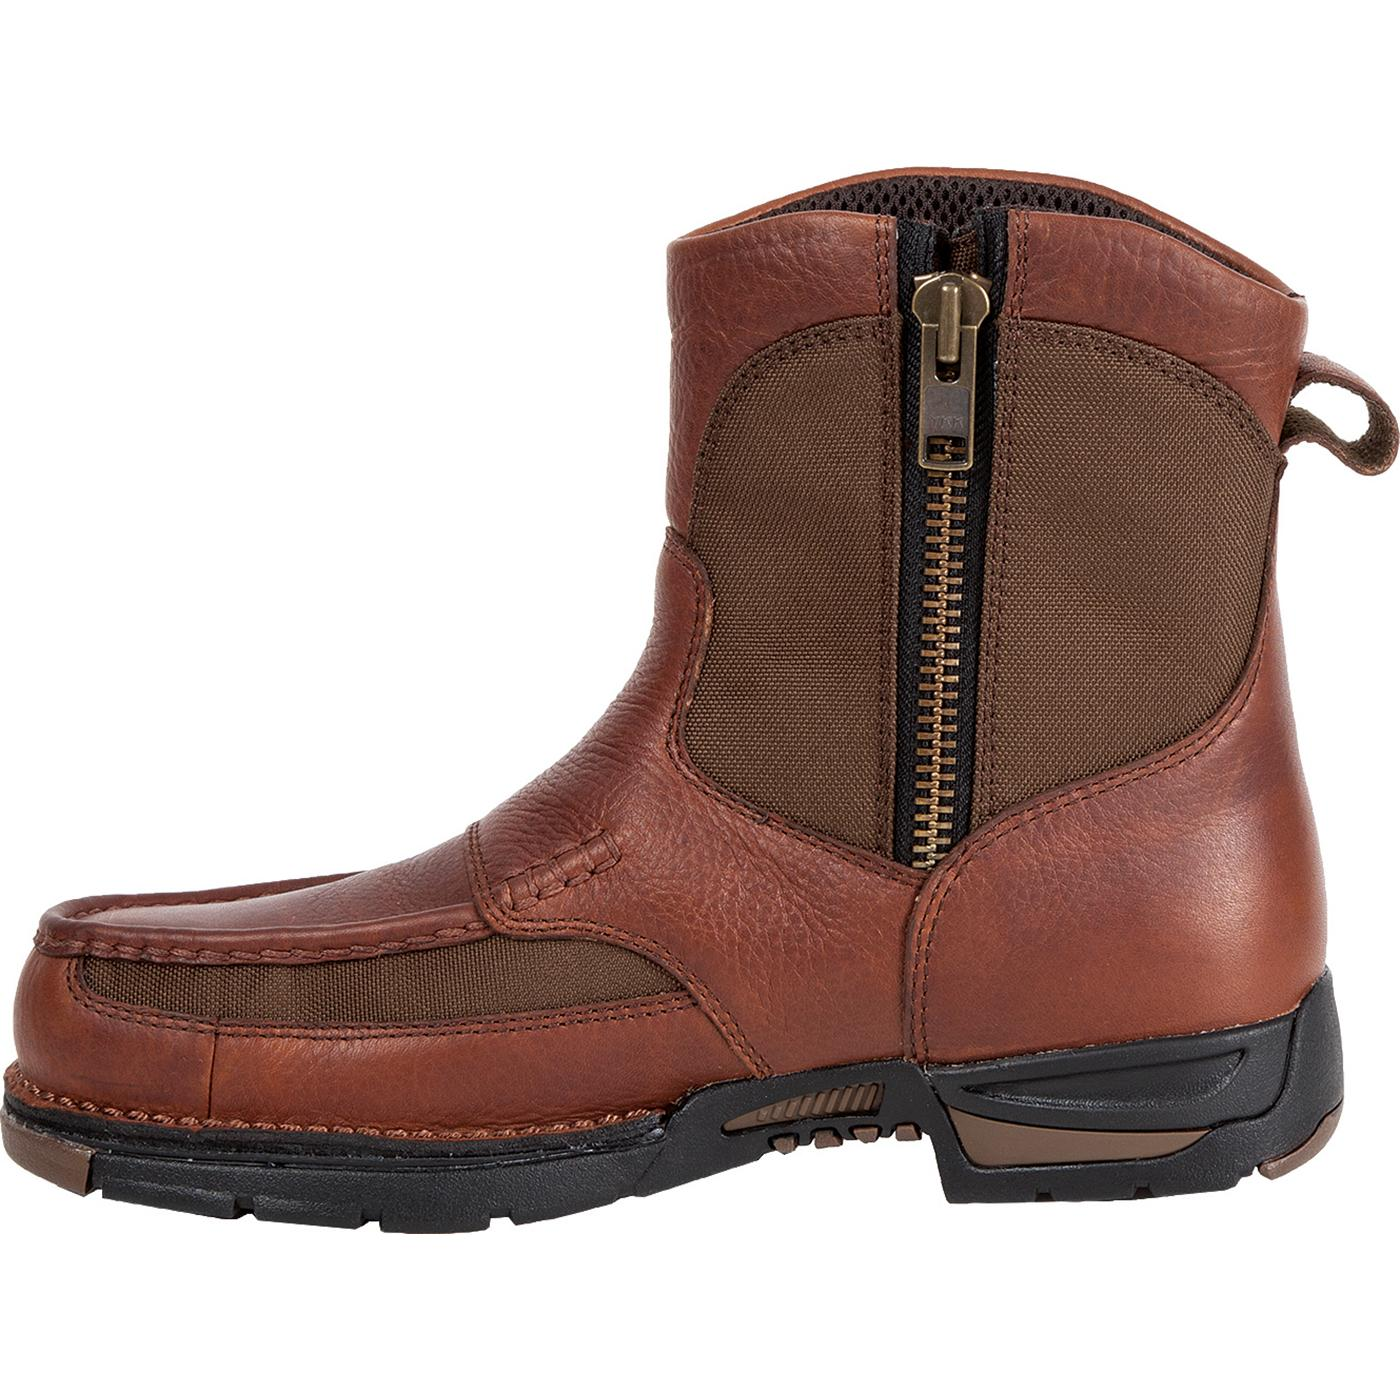 Georgia Athens Waterproof Pull On Side Zipper Work Boots